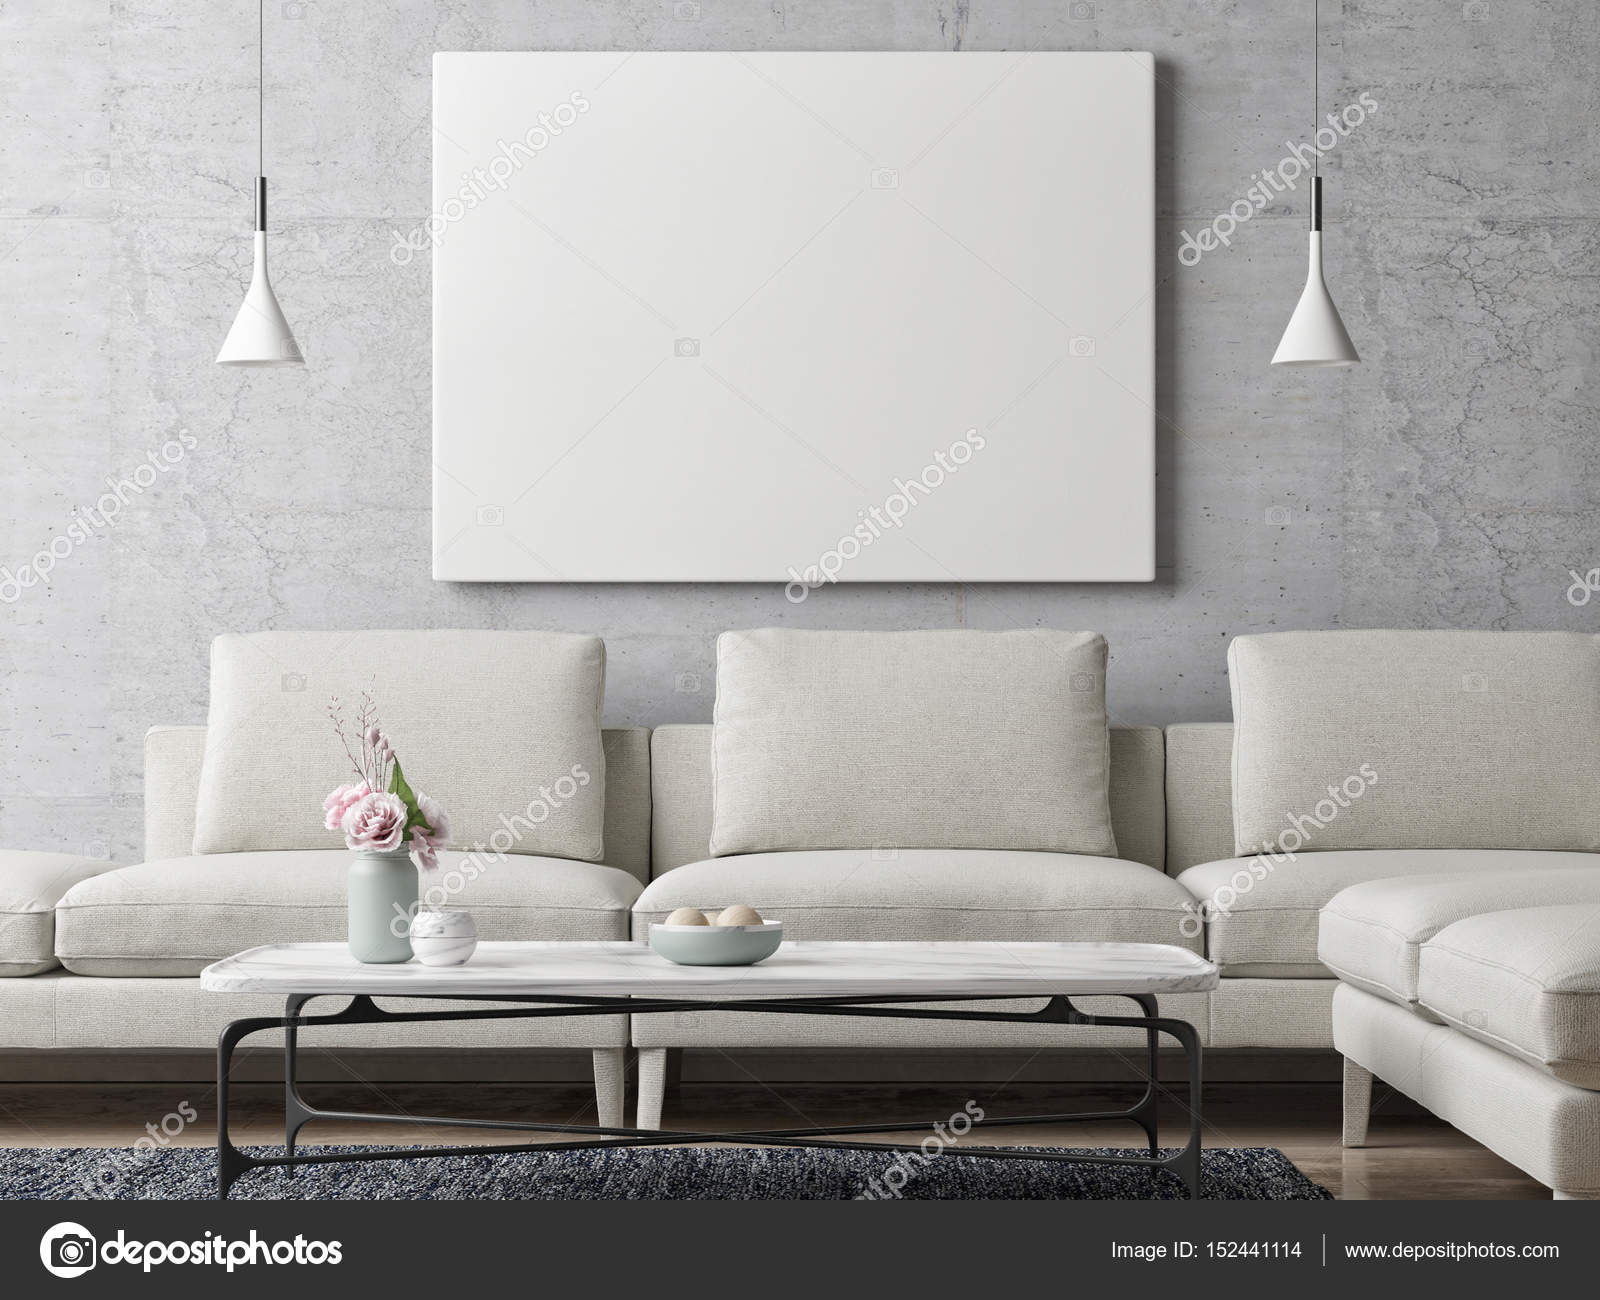 White poster on concrete wall living room background